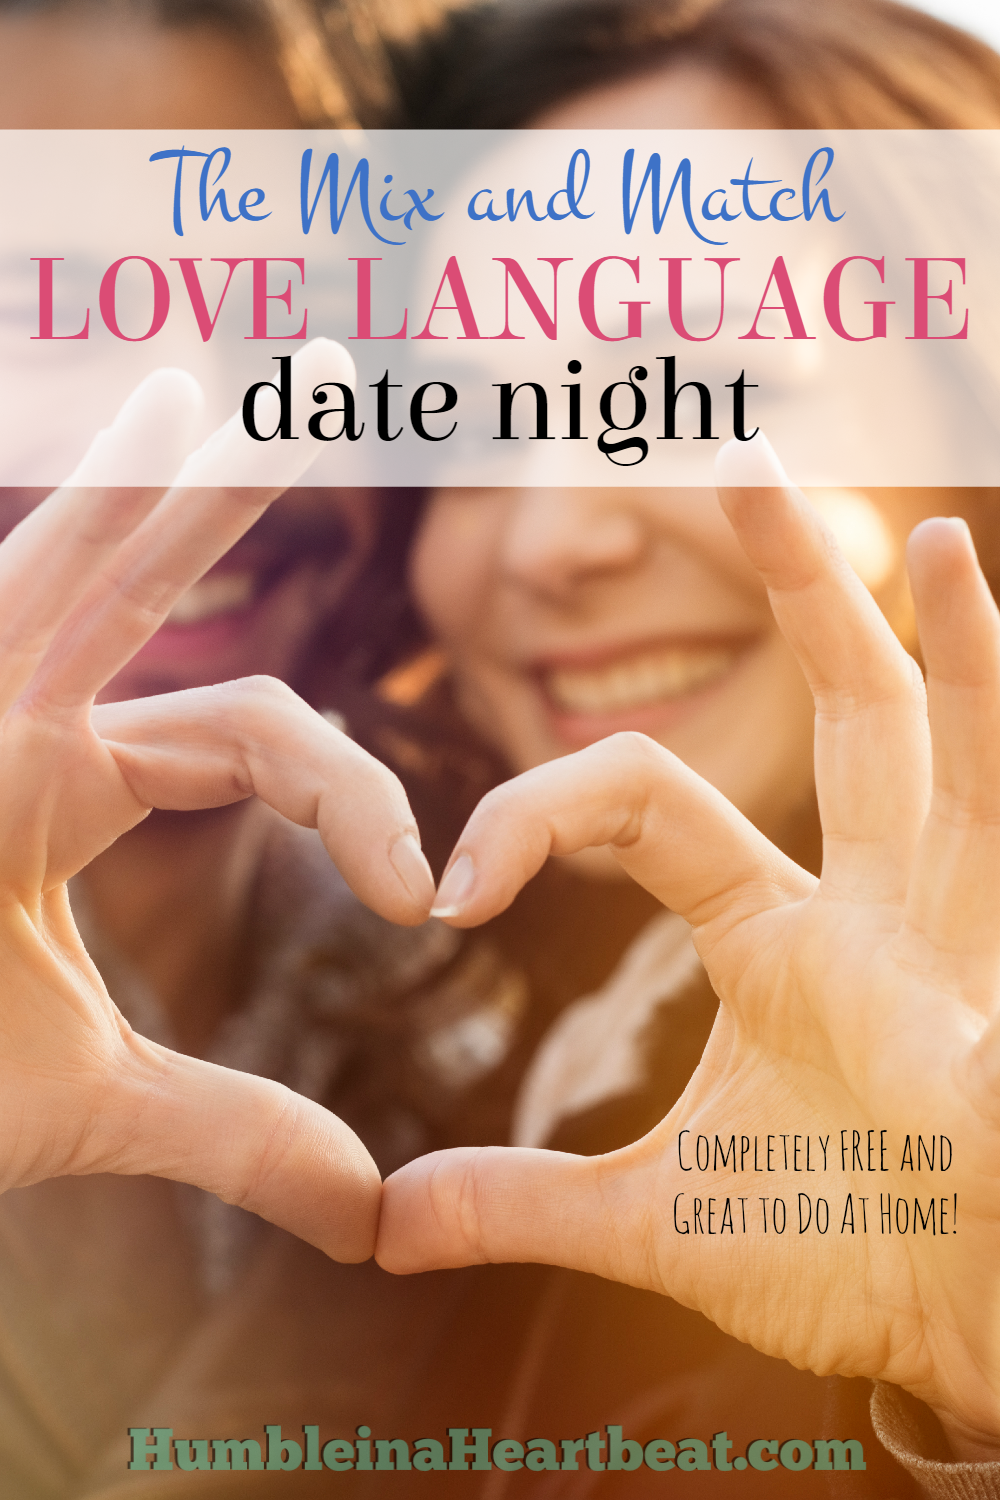 This fun and free love language date night can be done over and over and never get old! Plus, you won't have to find a babysitter and you can do it all for absolutely FREE!